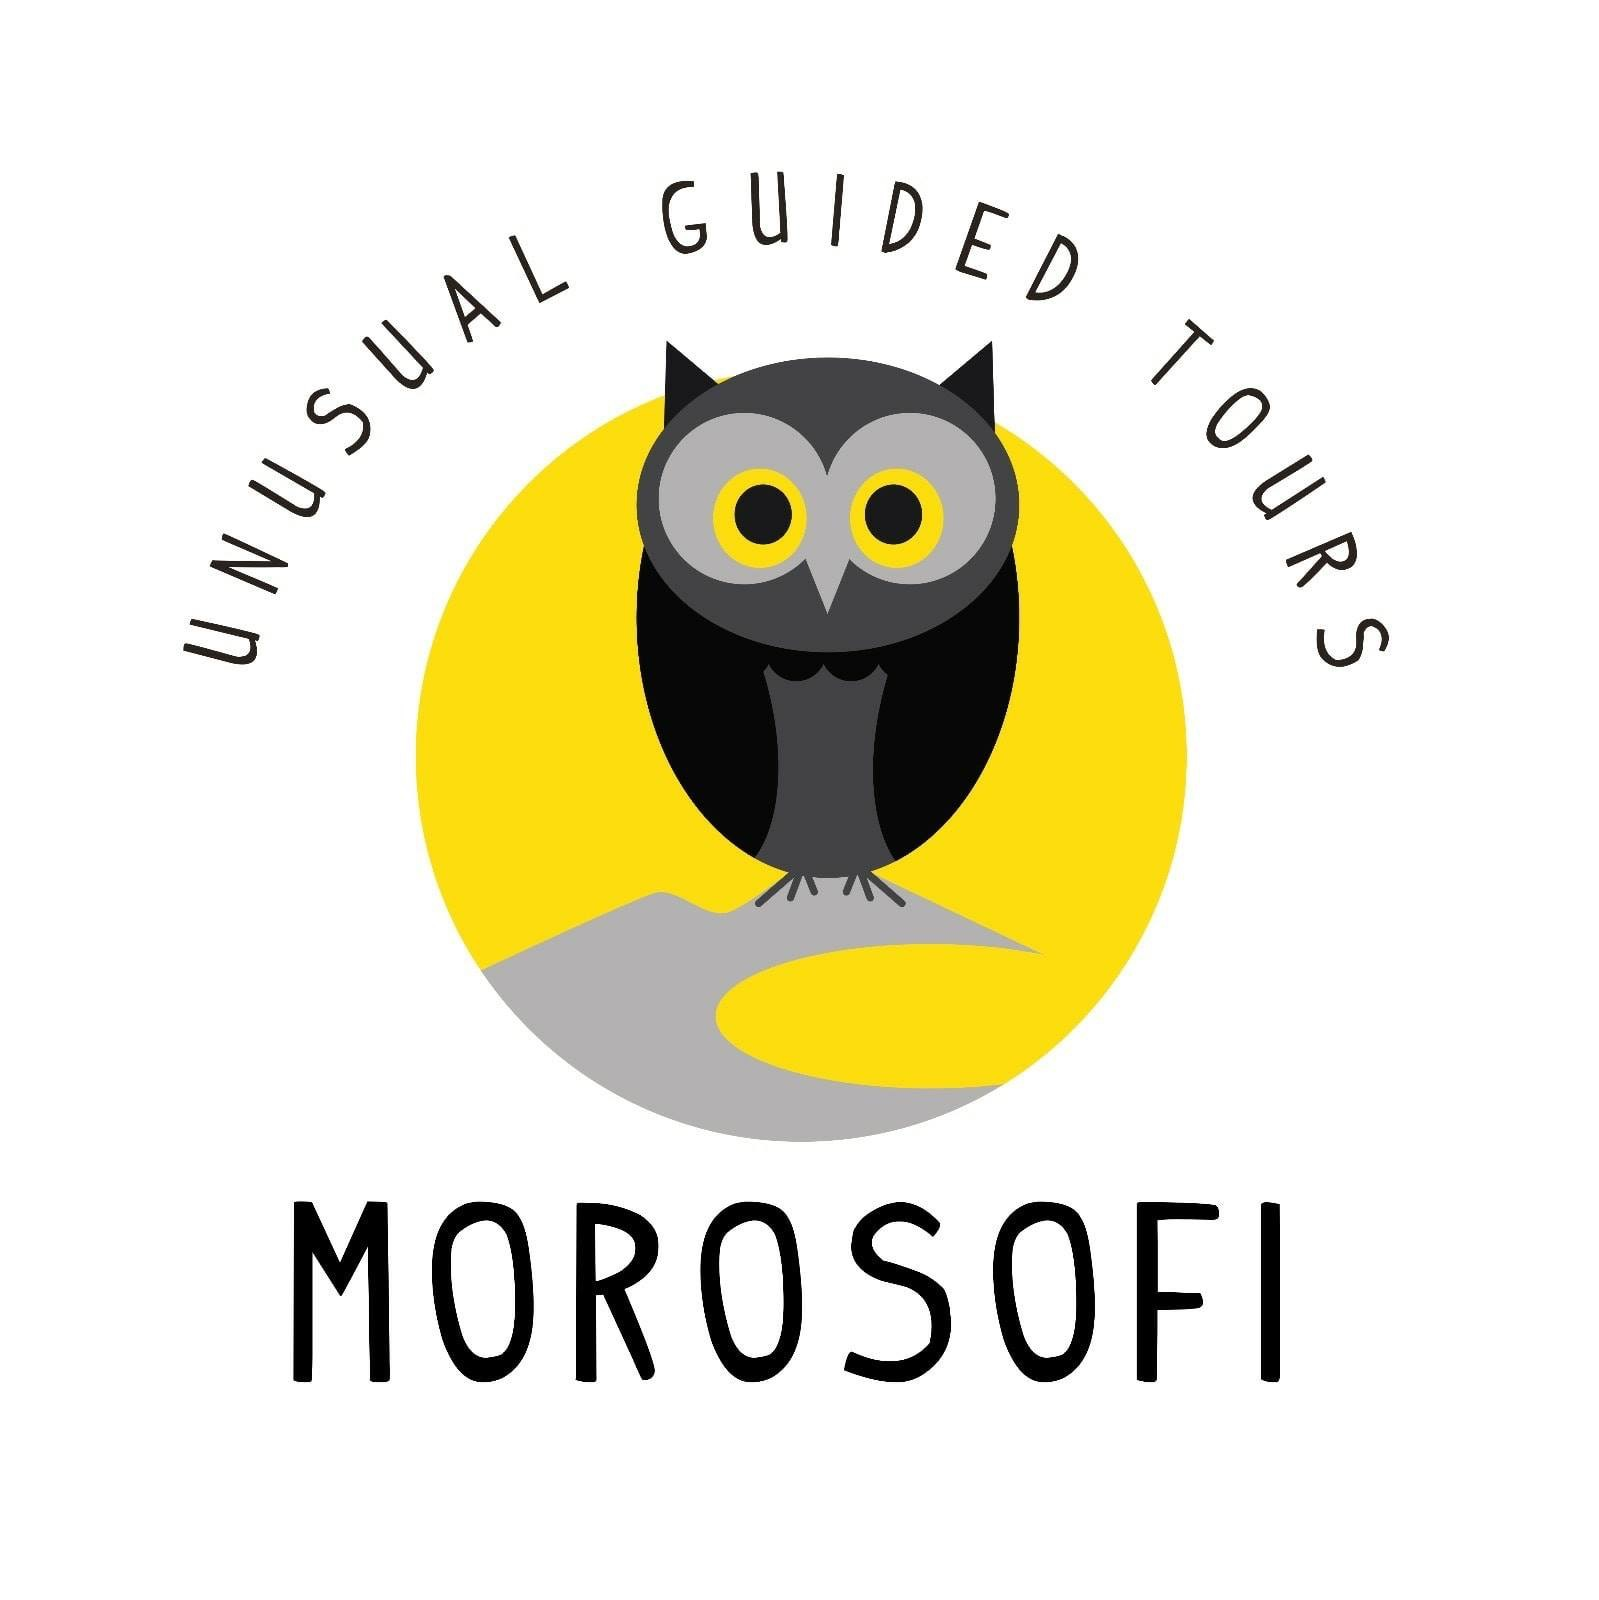 Morosofi. Unusual Guided Tours